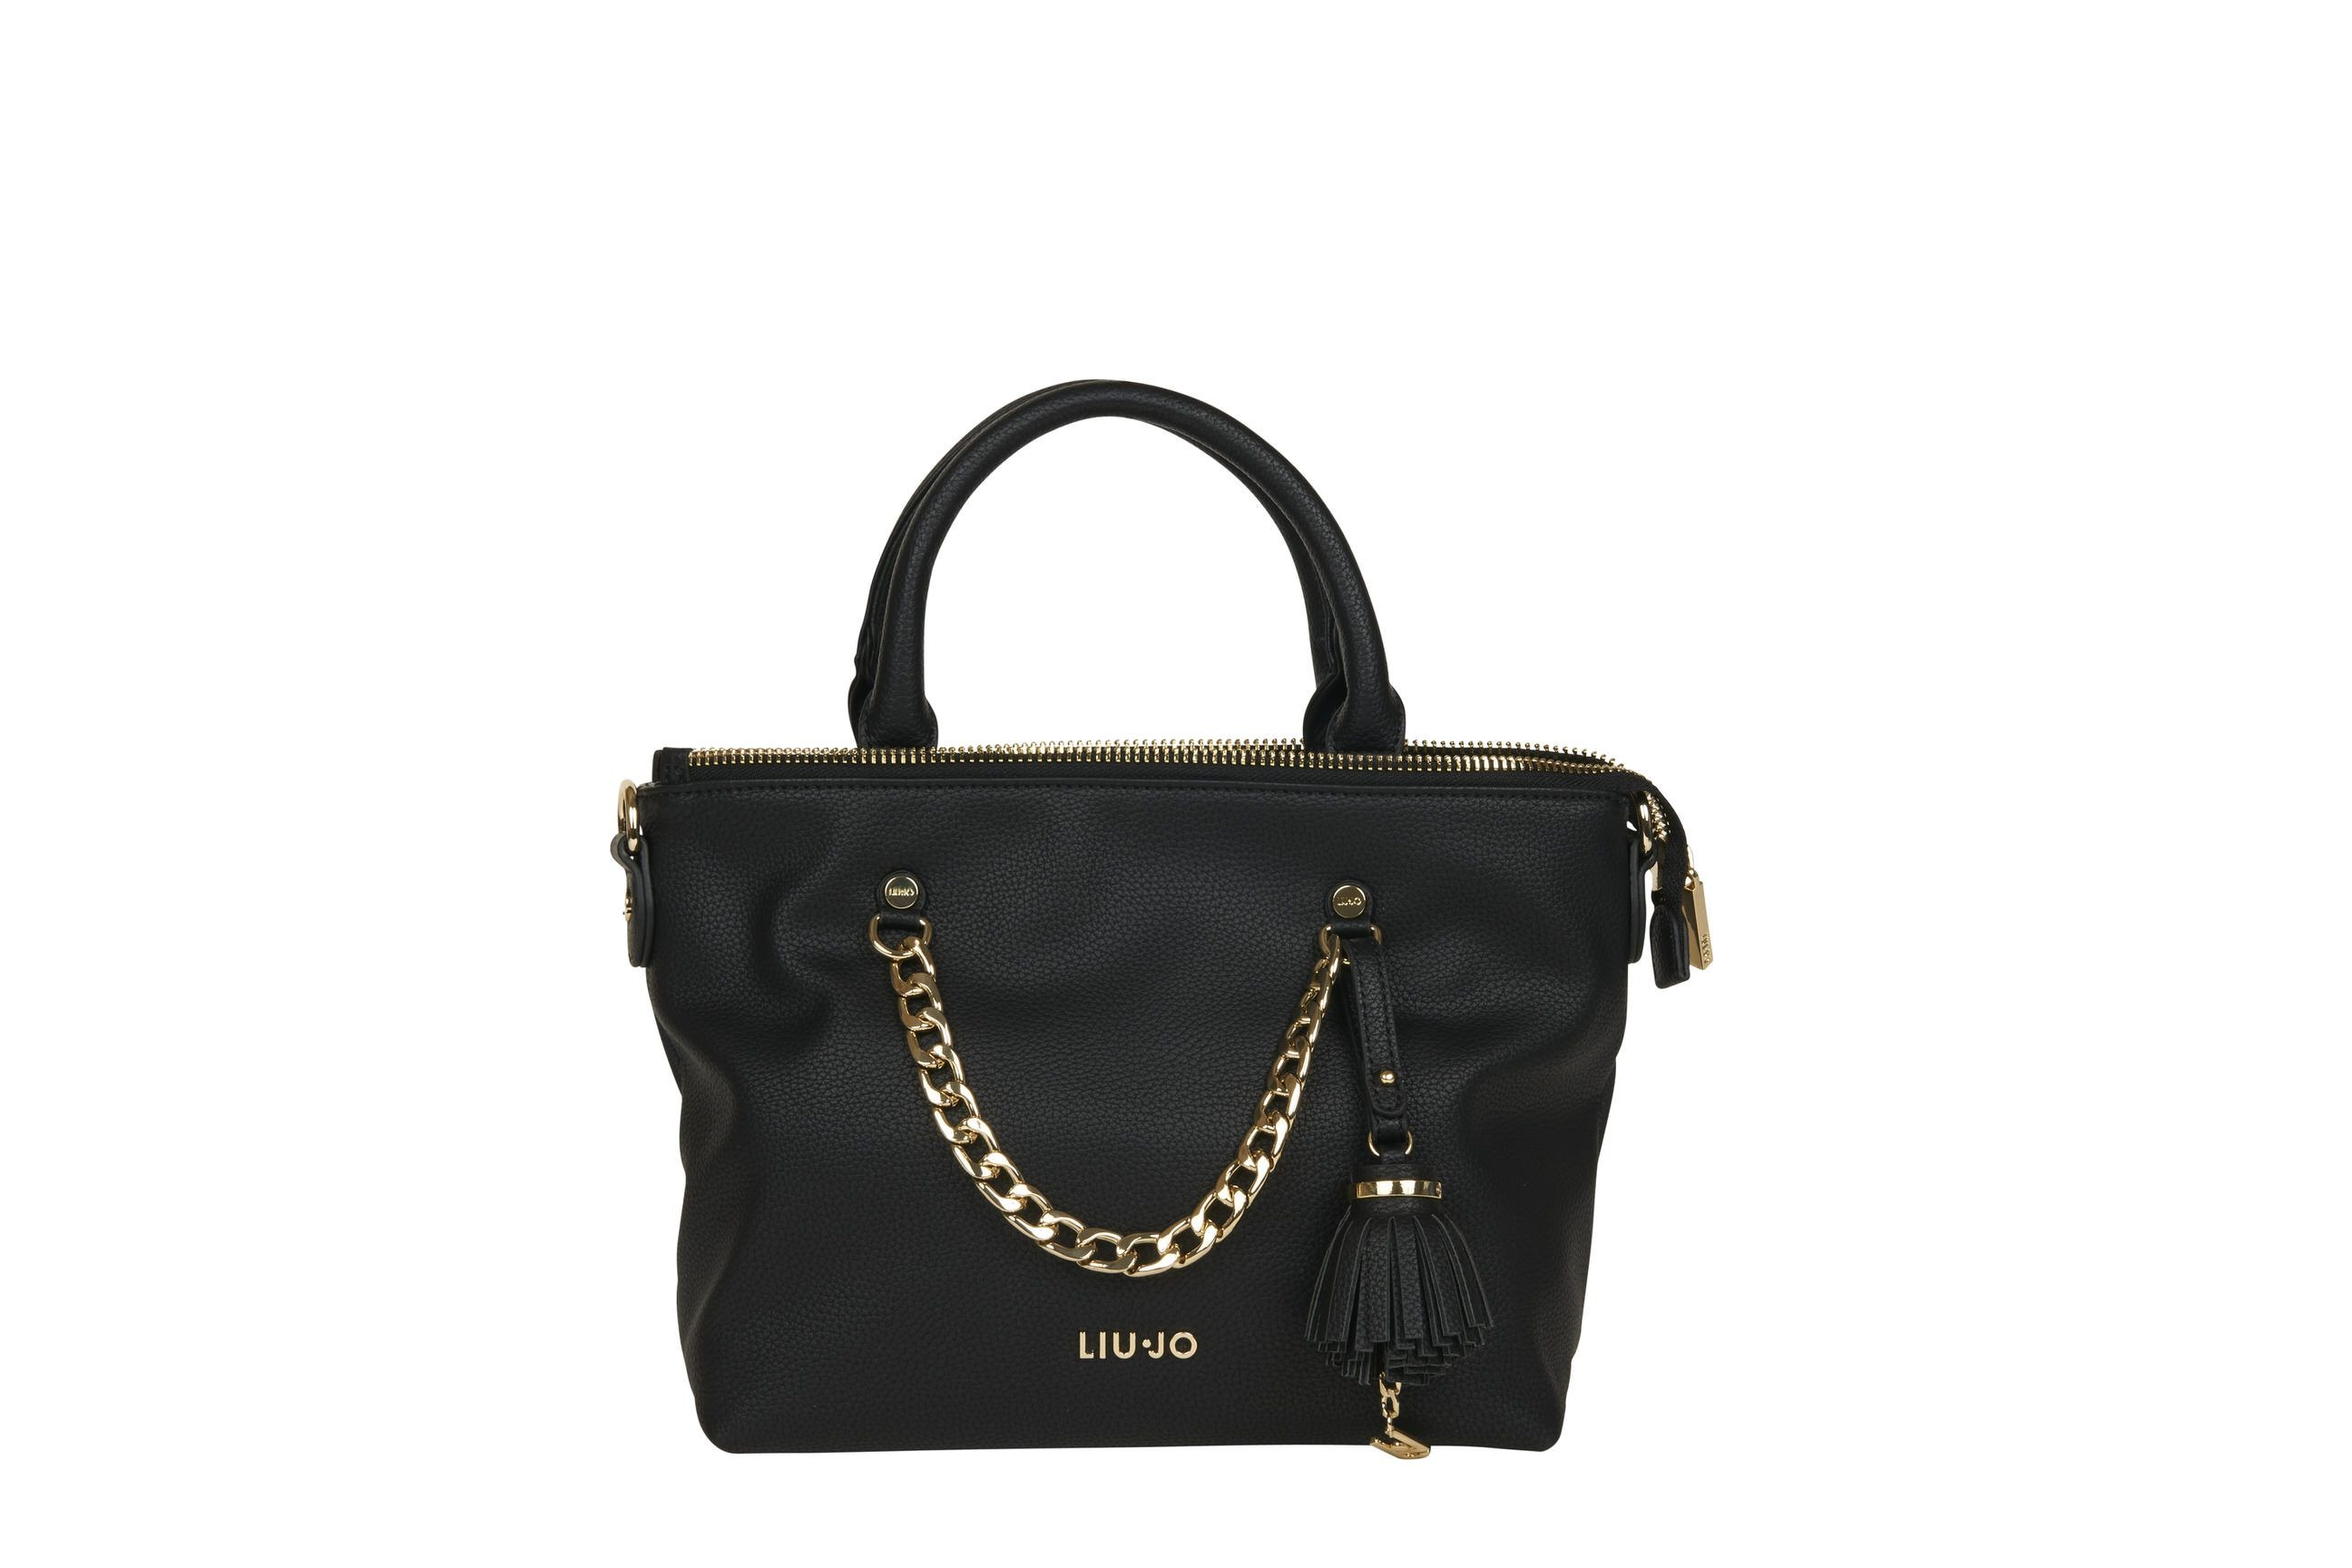 LIU JO BORSA SHOPPER NERO 22222